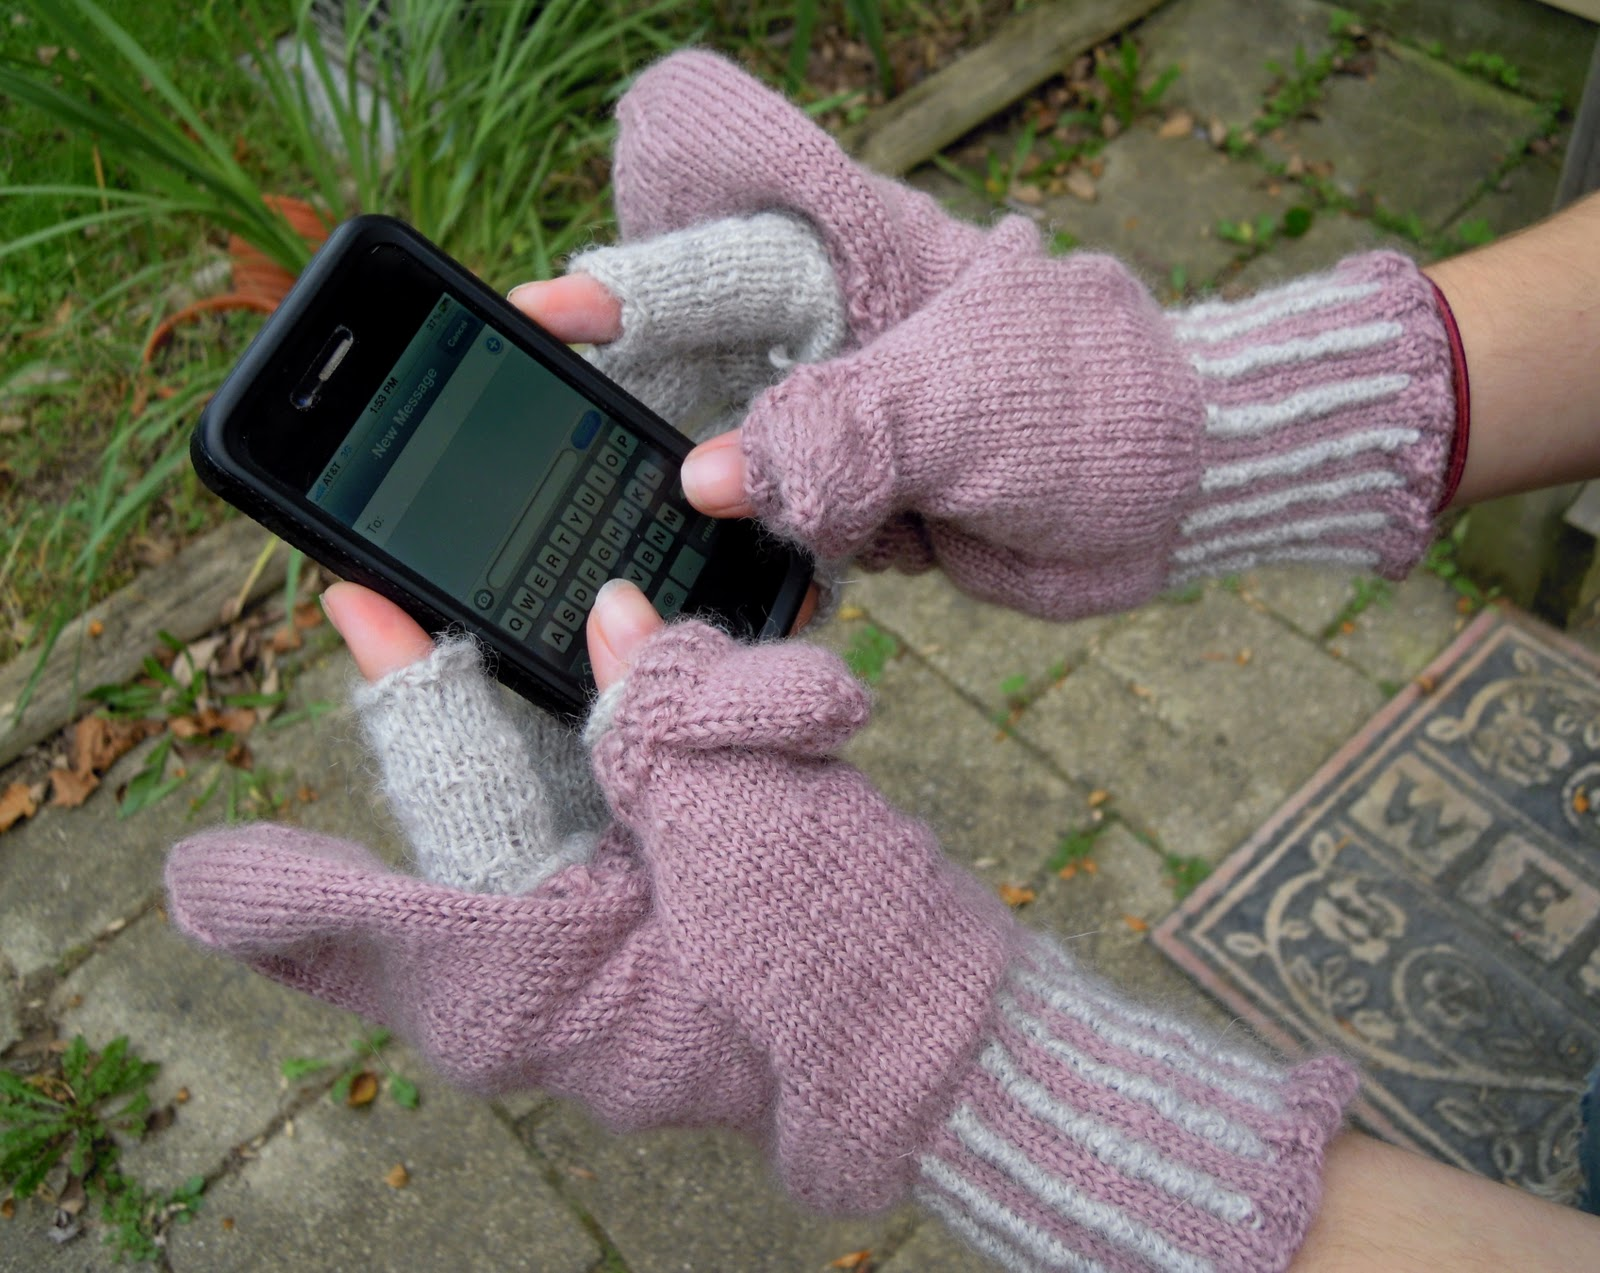 Knitting Pattern For Texting Mittens : The Inconsequential Blogger: Texting Mittens Knitted from Handspun Yarn